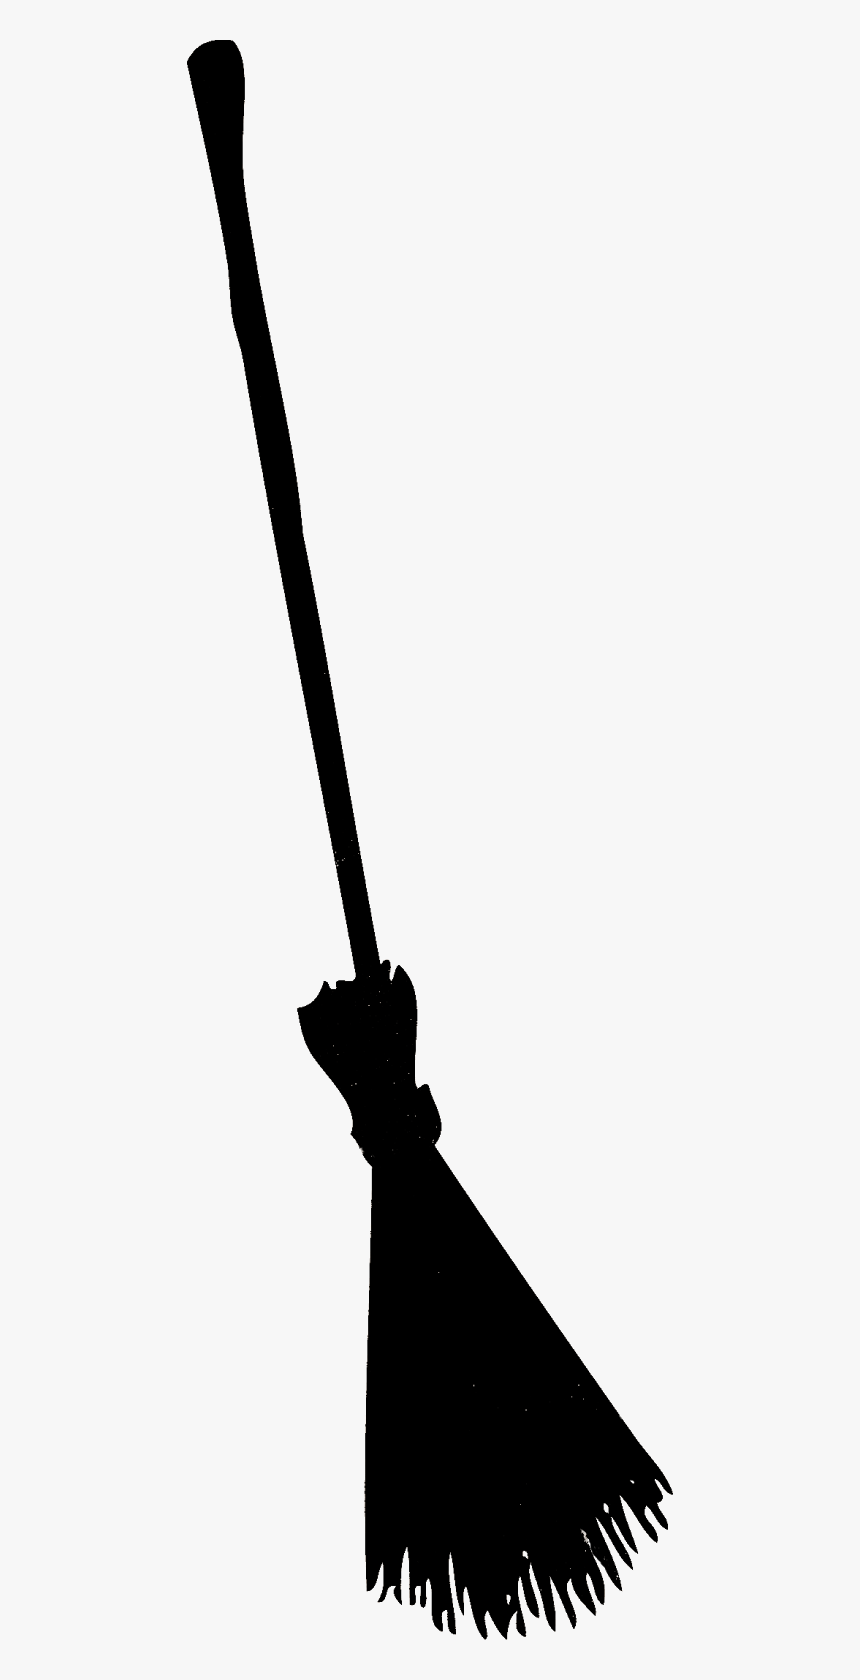 Halloween Broom Witch Broom Silhouette Png Transparent Png Kindpng